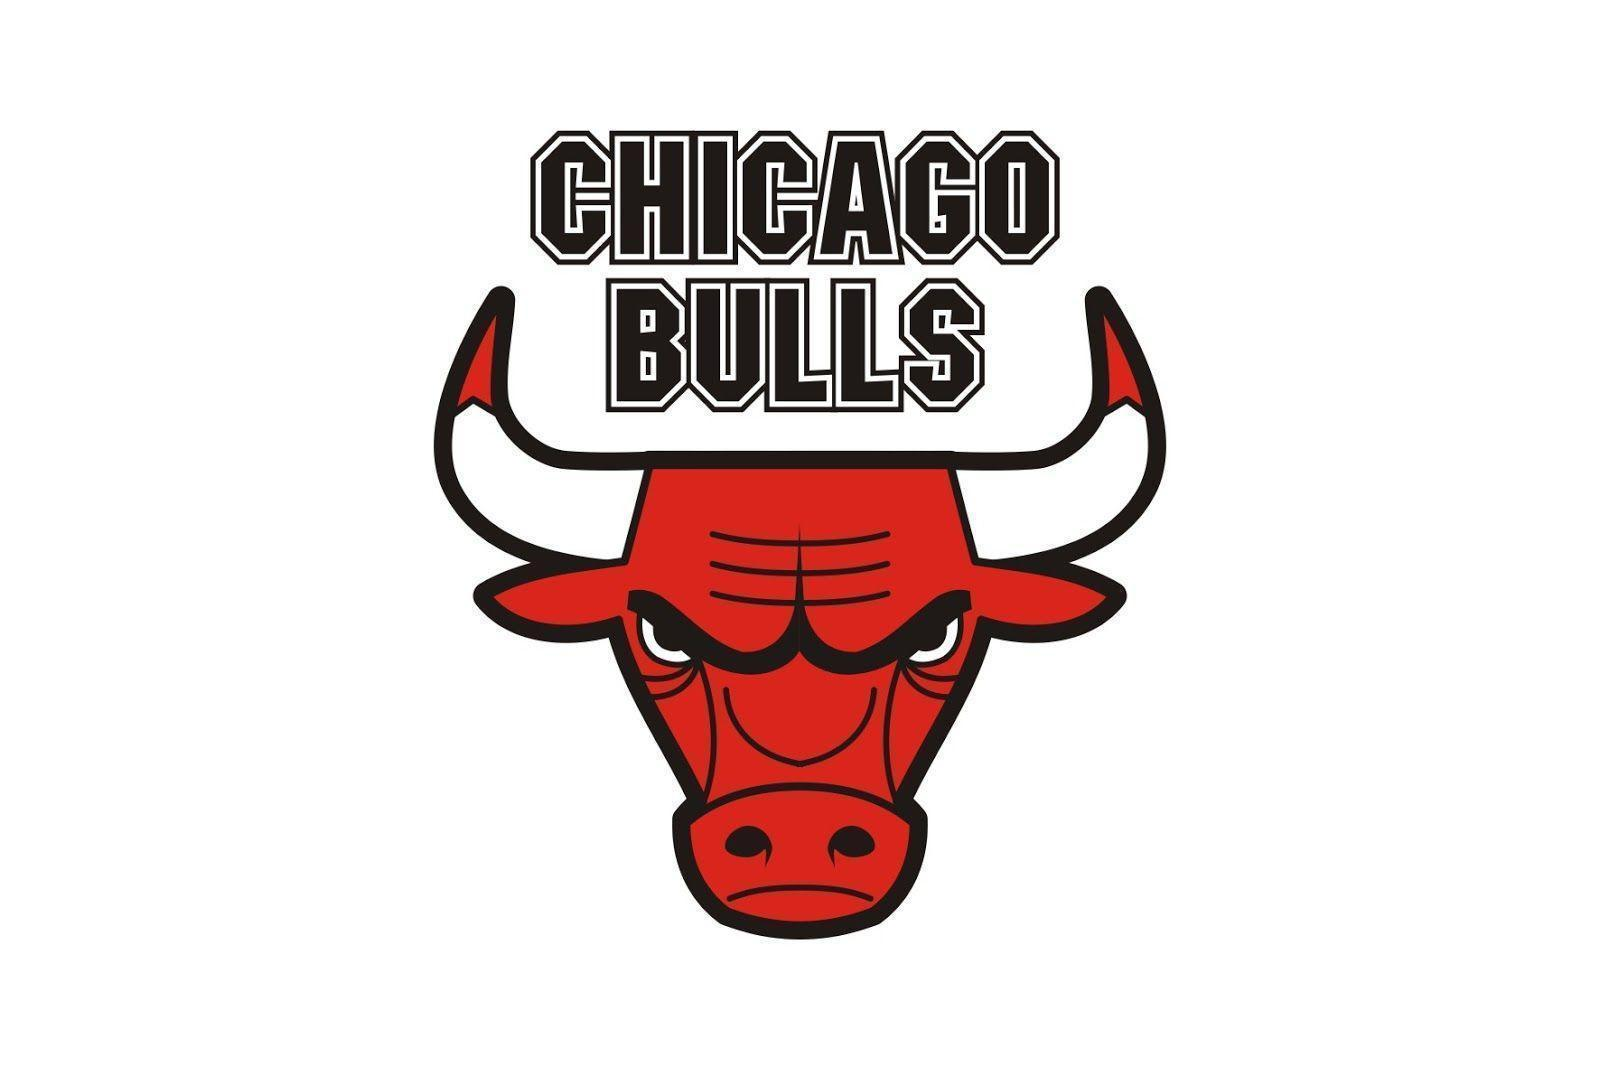 Chicago Bulls Logo HD Image Wallpapers 13840